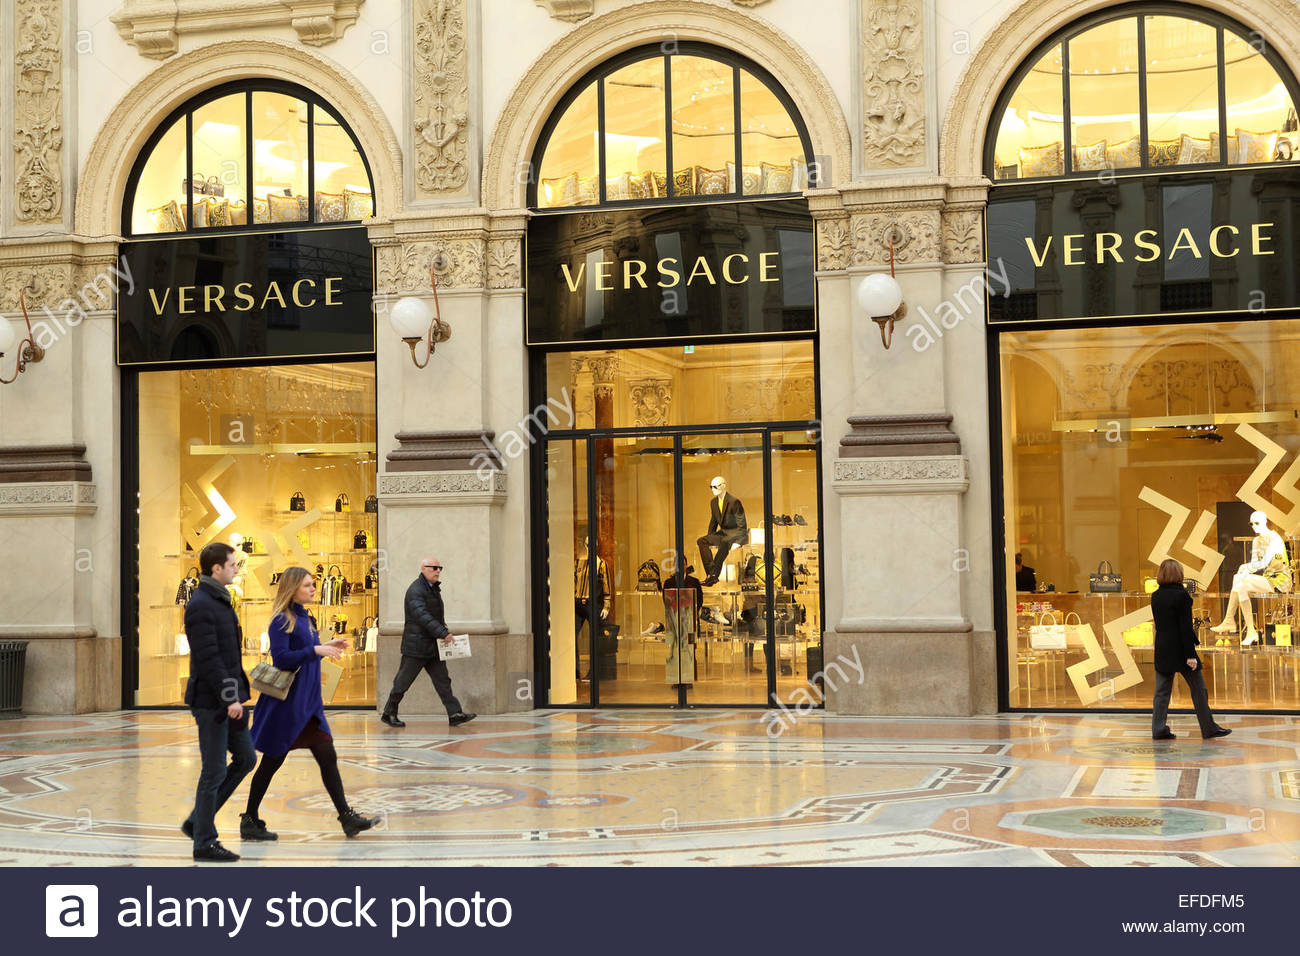 925ff9d9d4 The window of the Versace store in the Galleria Vittorio Emanuele II  shopping mall in Milan